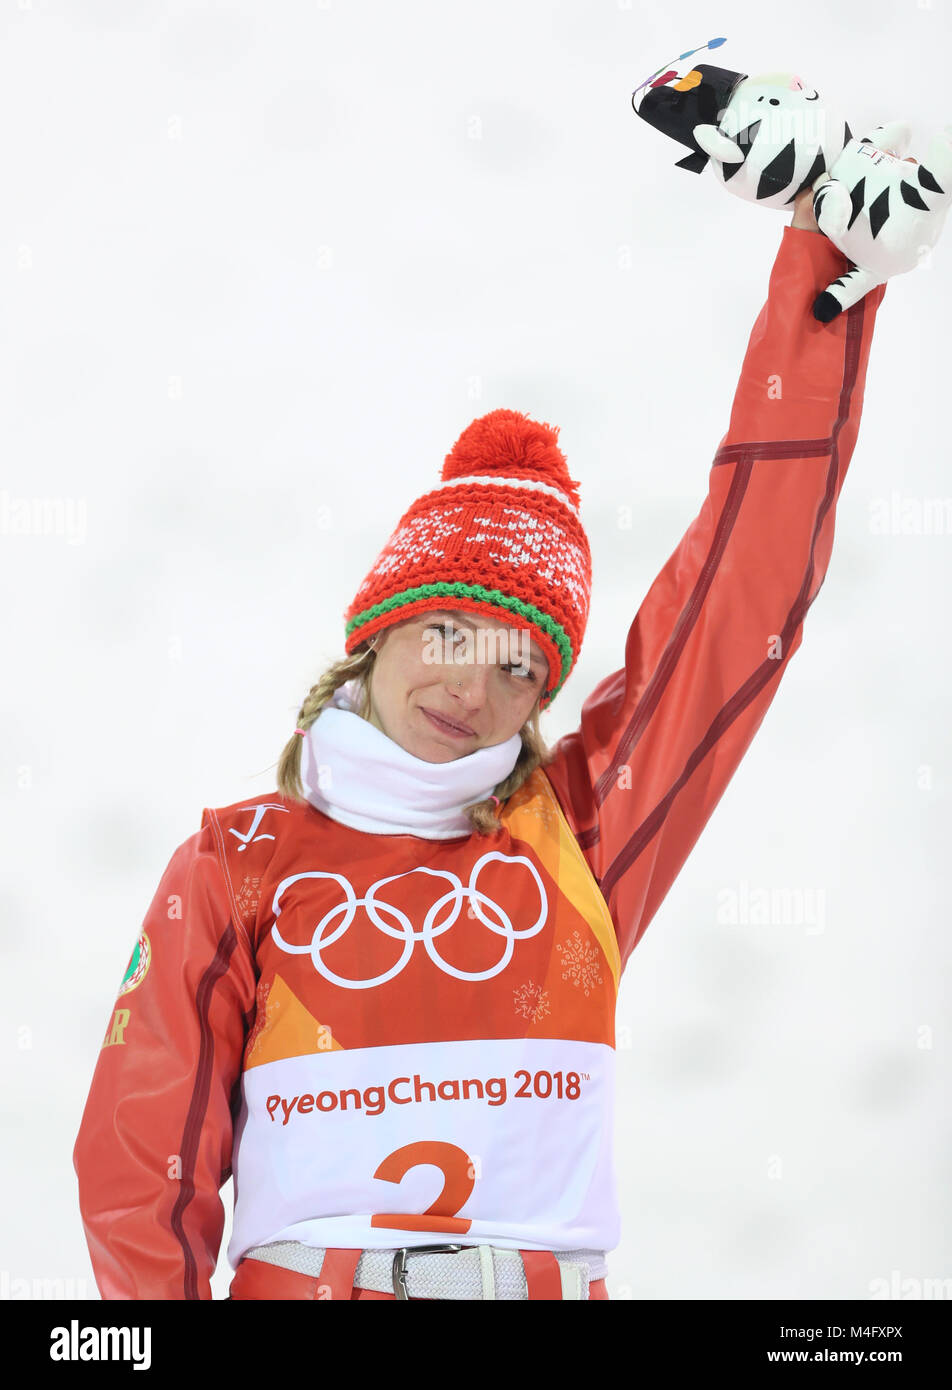 70ec02af8 Hanna Huskova of Belarus celebrates during venue ceremony of ladies   aerials of freestyle skiing at 2018 PyeongChang Winter Olympic Games at  Phoenix Snow ...